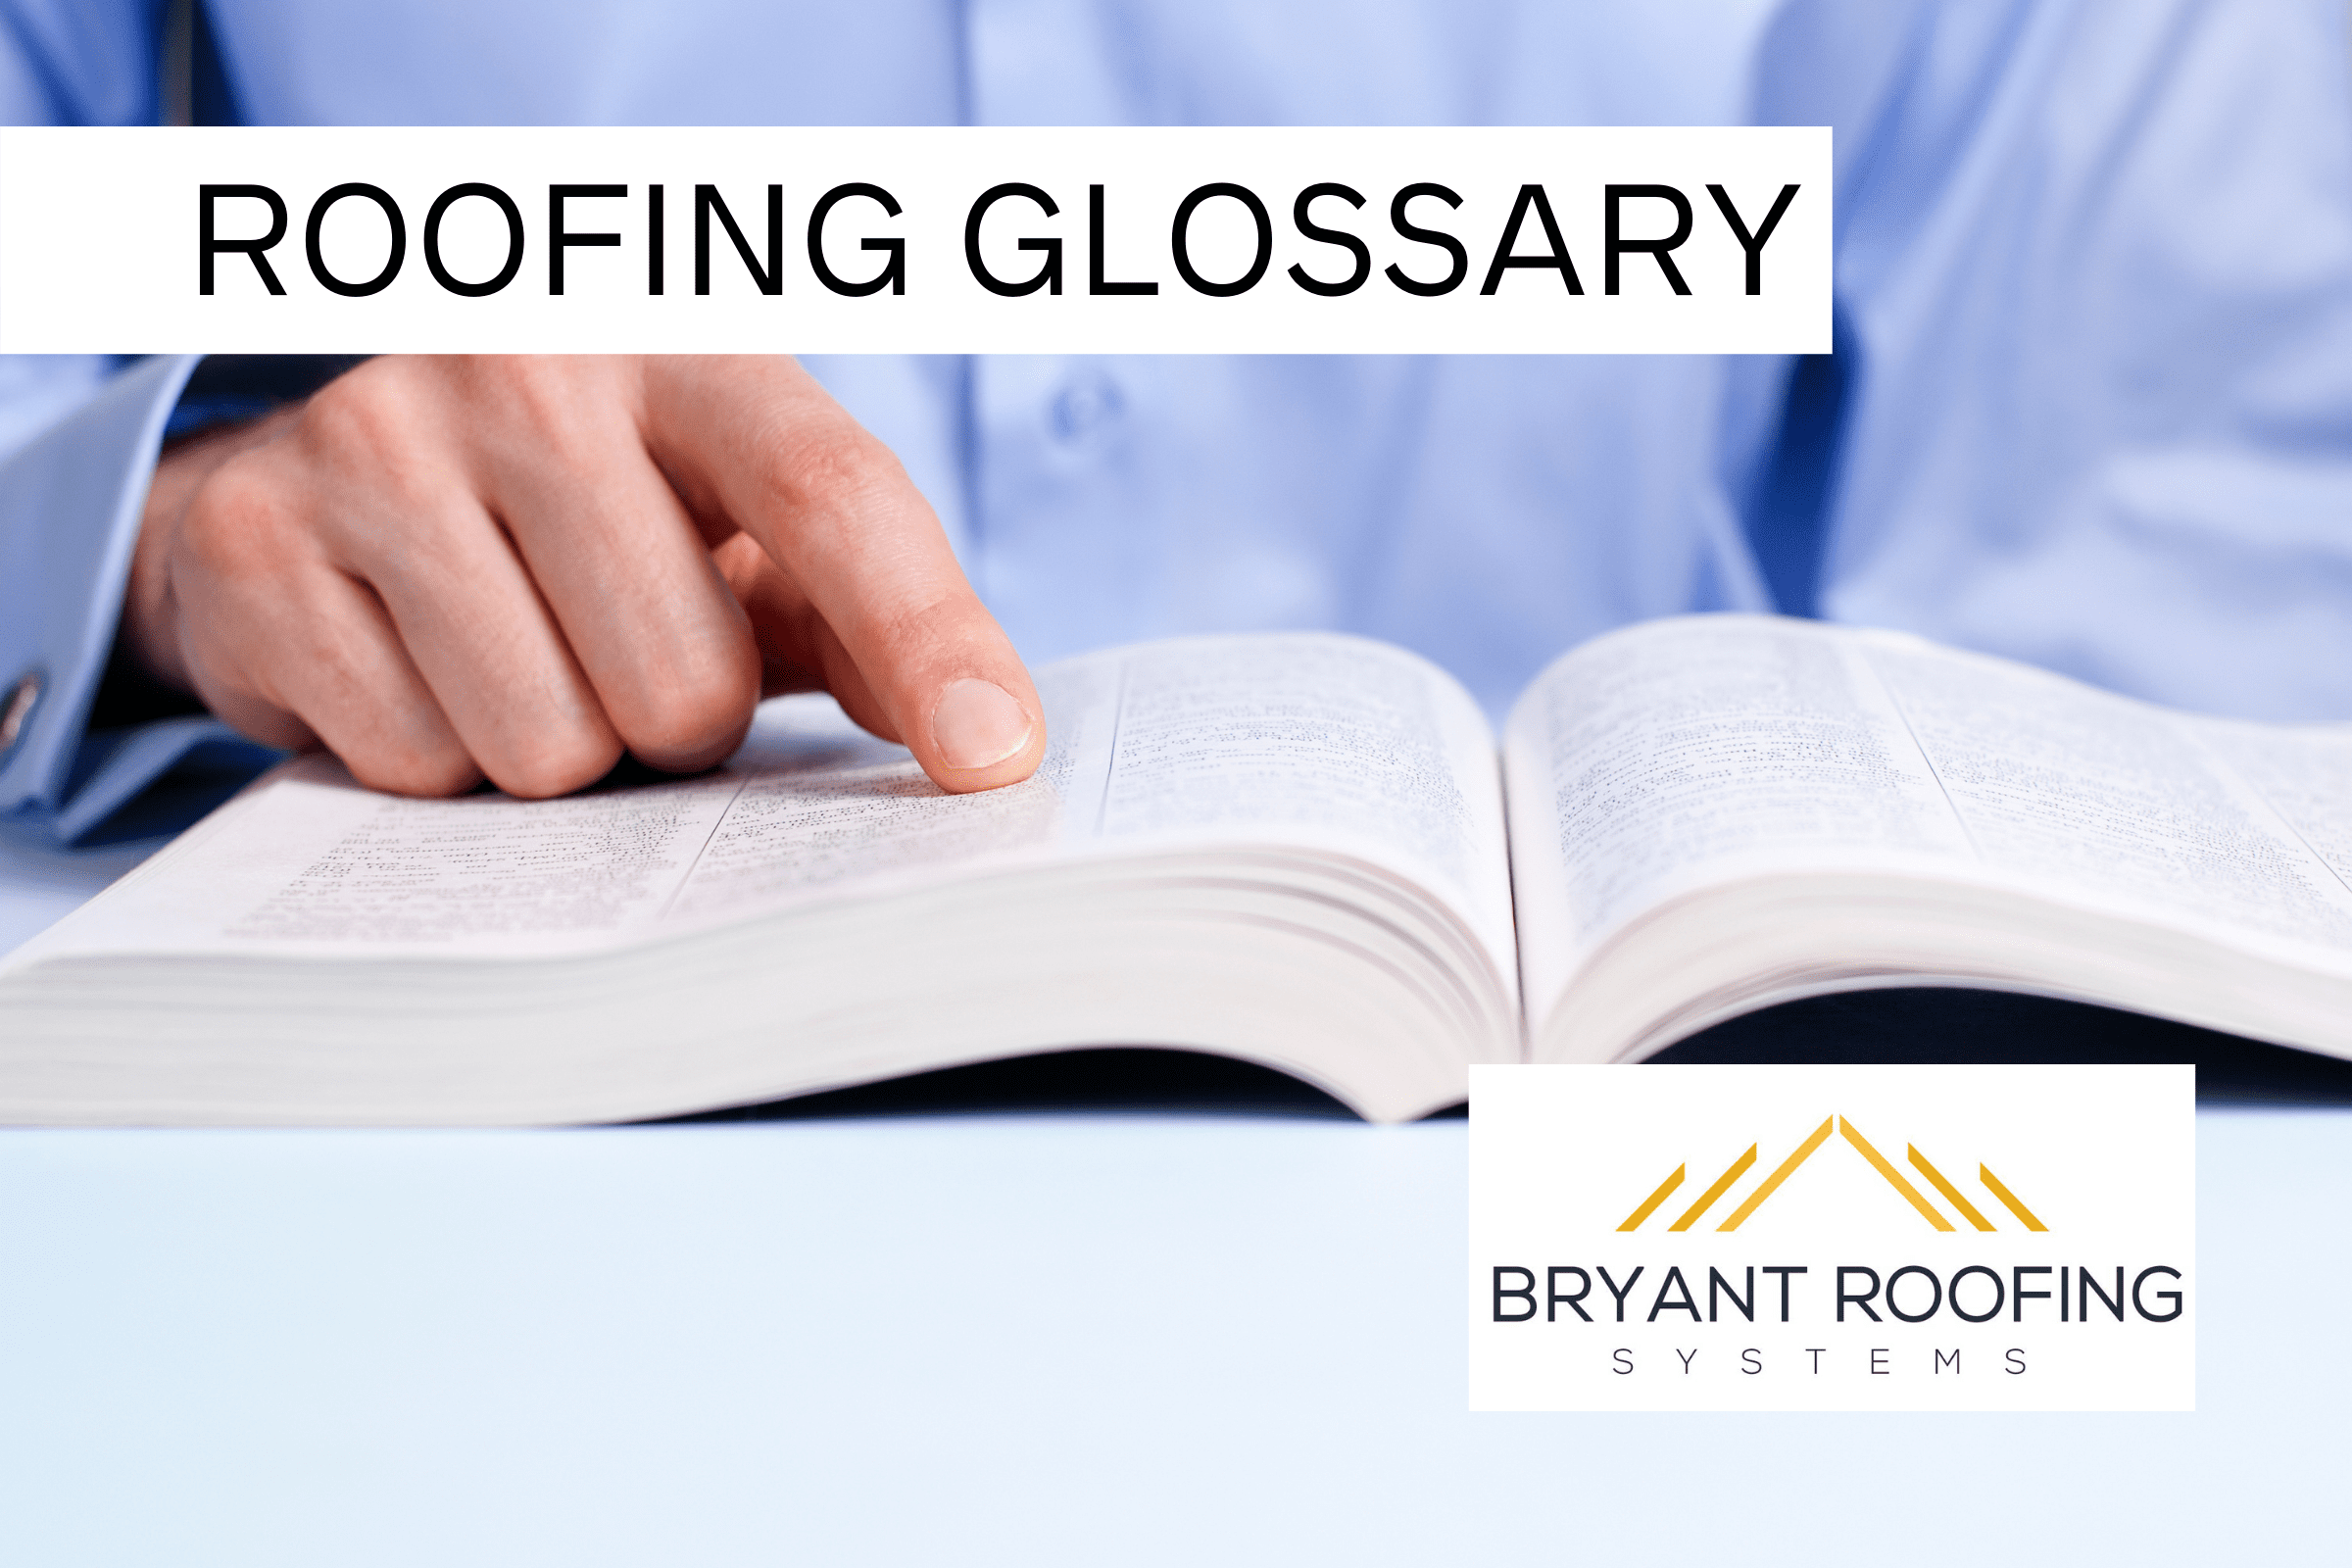 ROOFING GLOSSARY